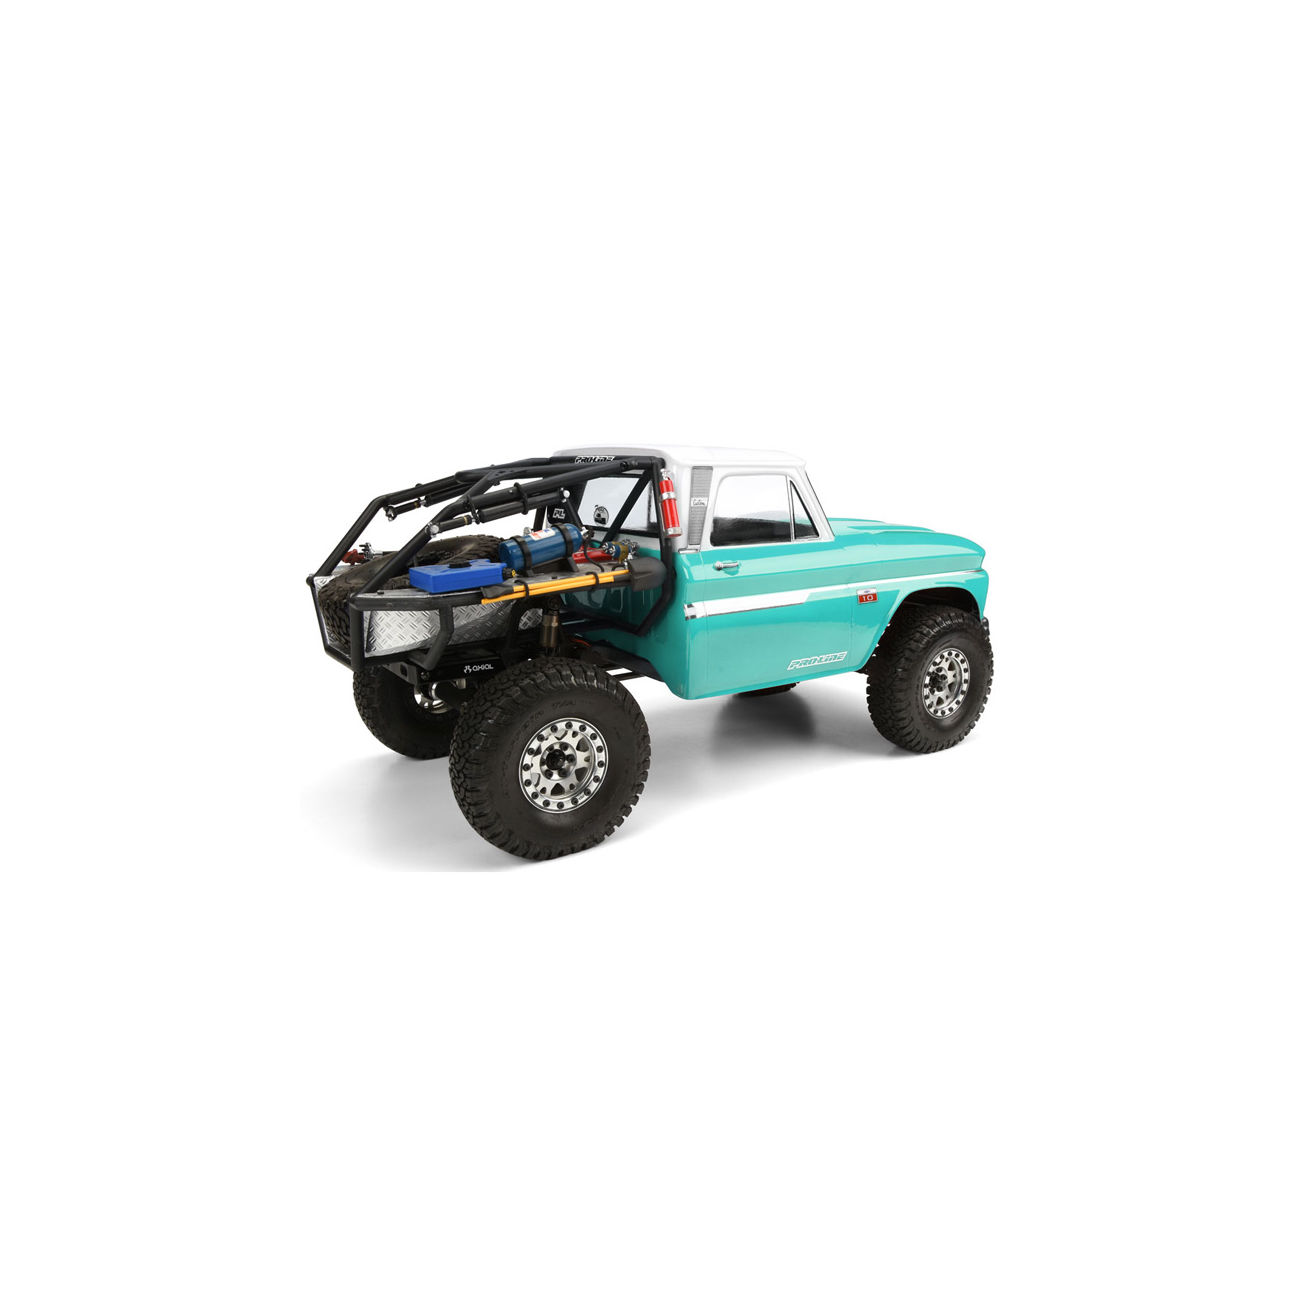 Pro-Line 1:10 Lexan Karosserie Chevrolet C-10 1966 Cab f. Axial Honcho 3483-01 2